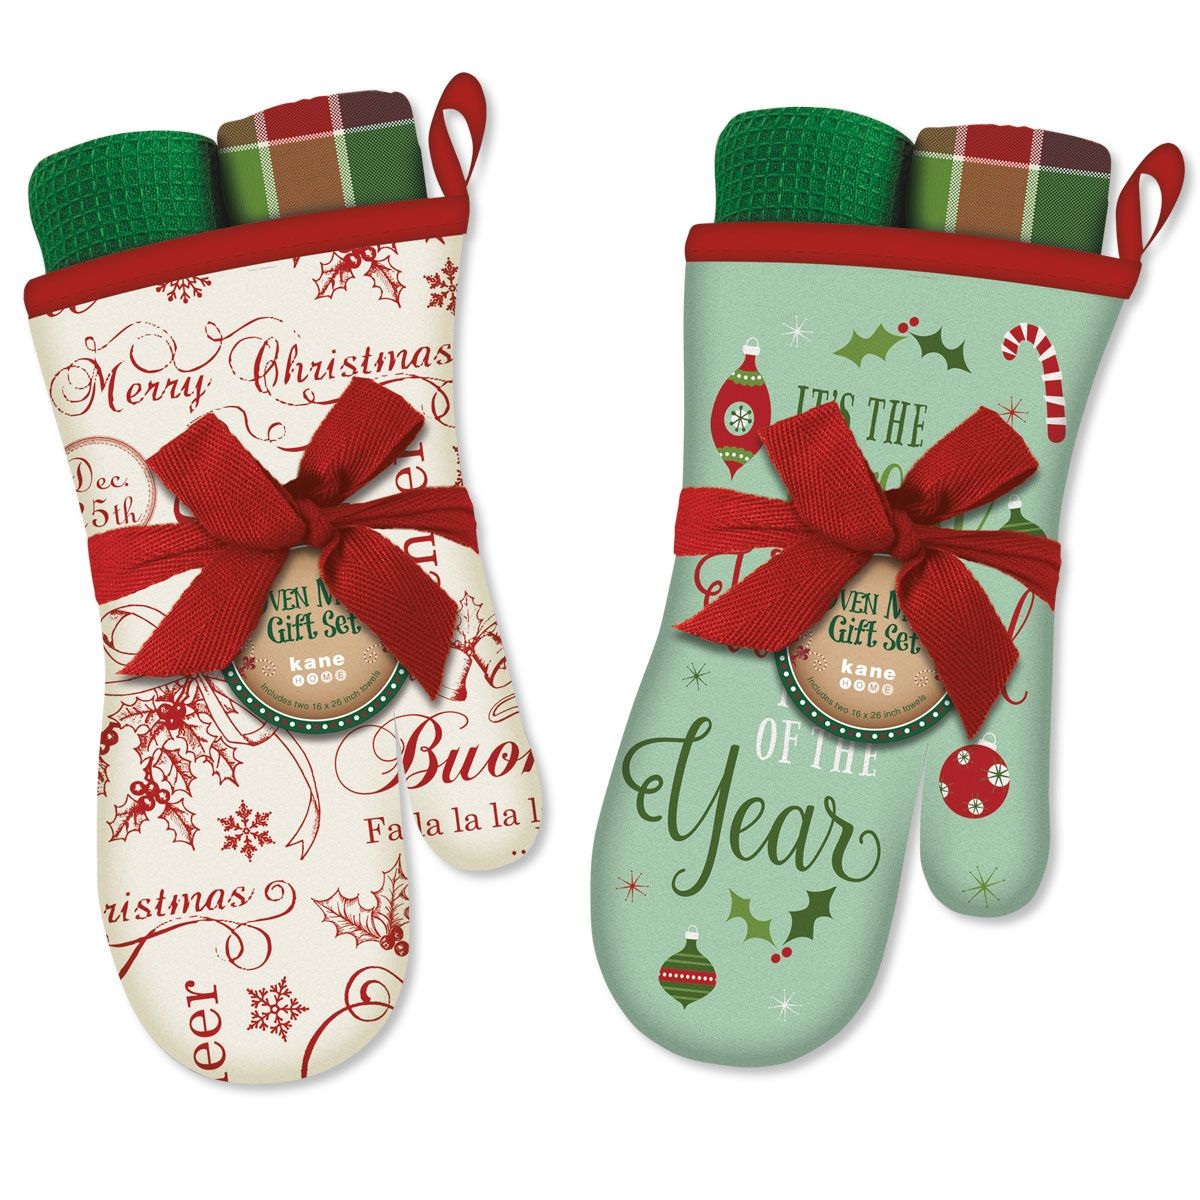 Oven Mitt and Towel Gift Set